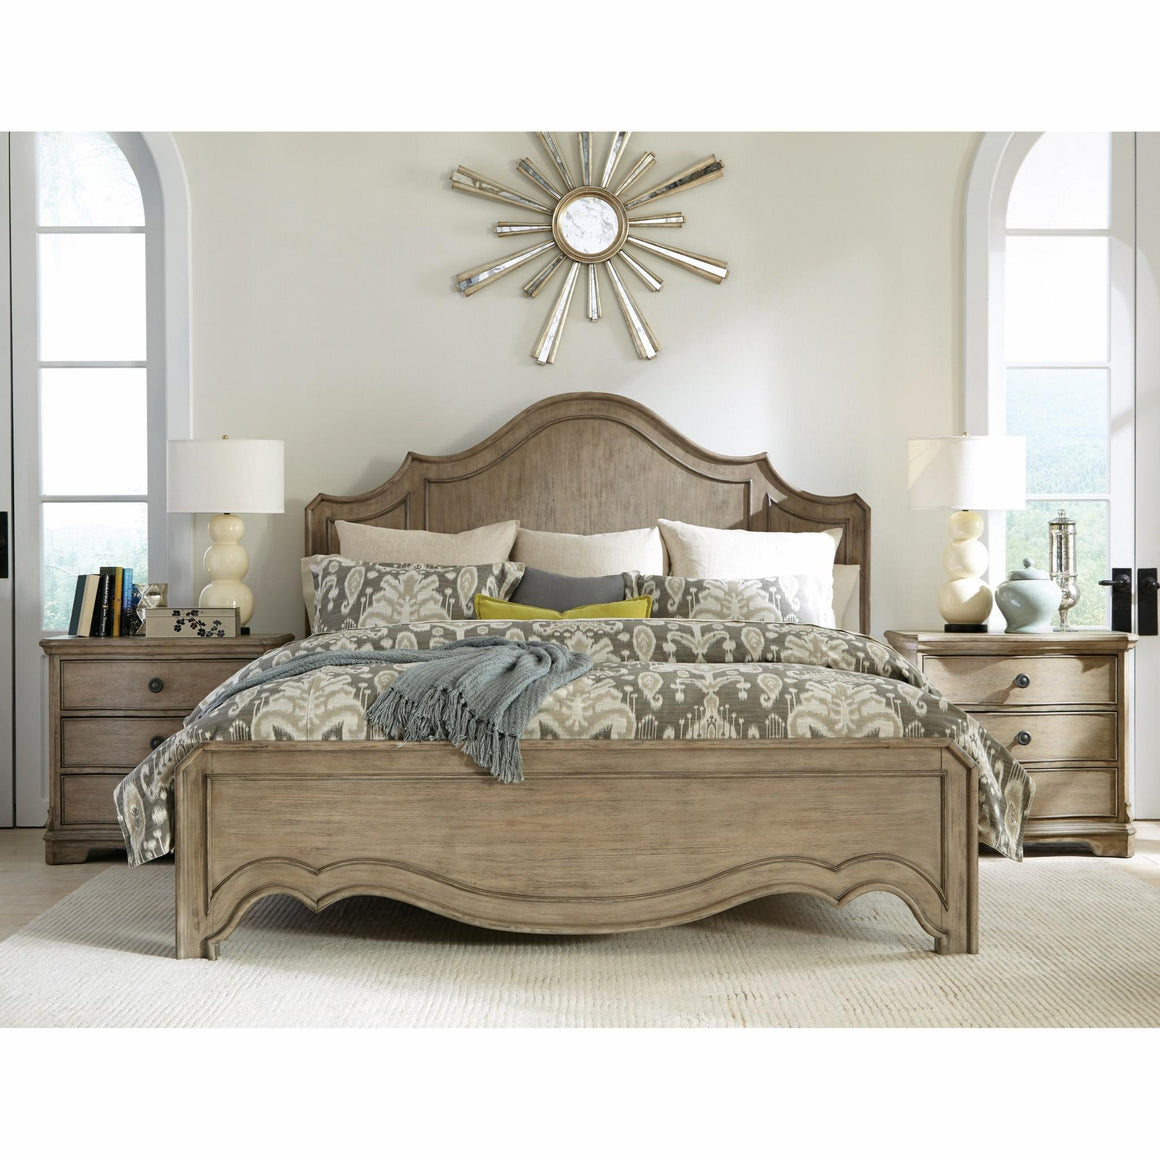 Bedroom Sets - Huffman Koos Furniture